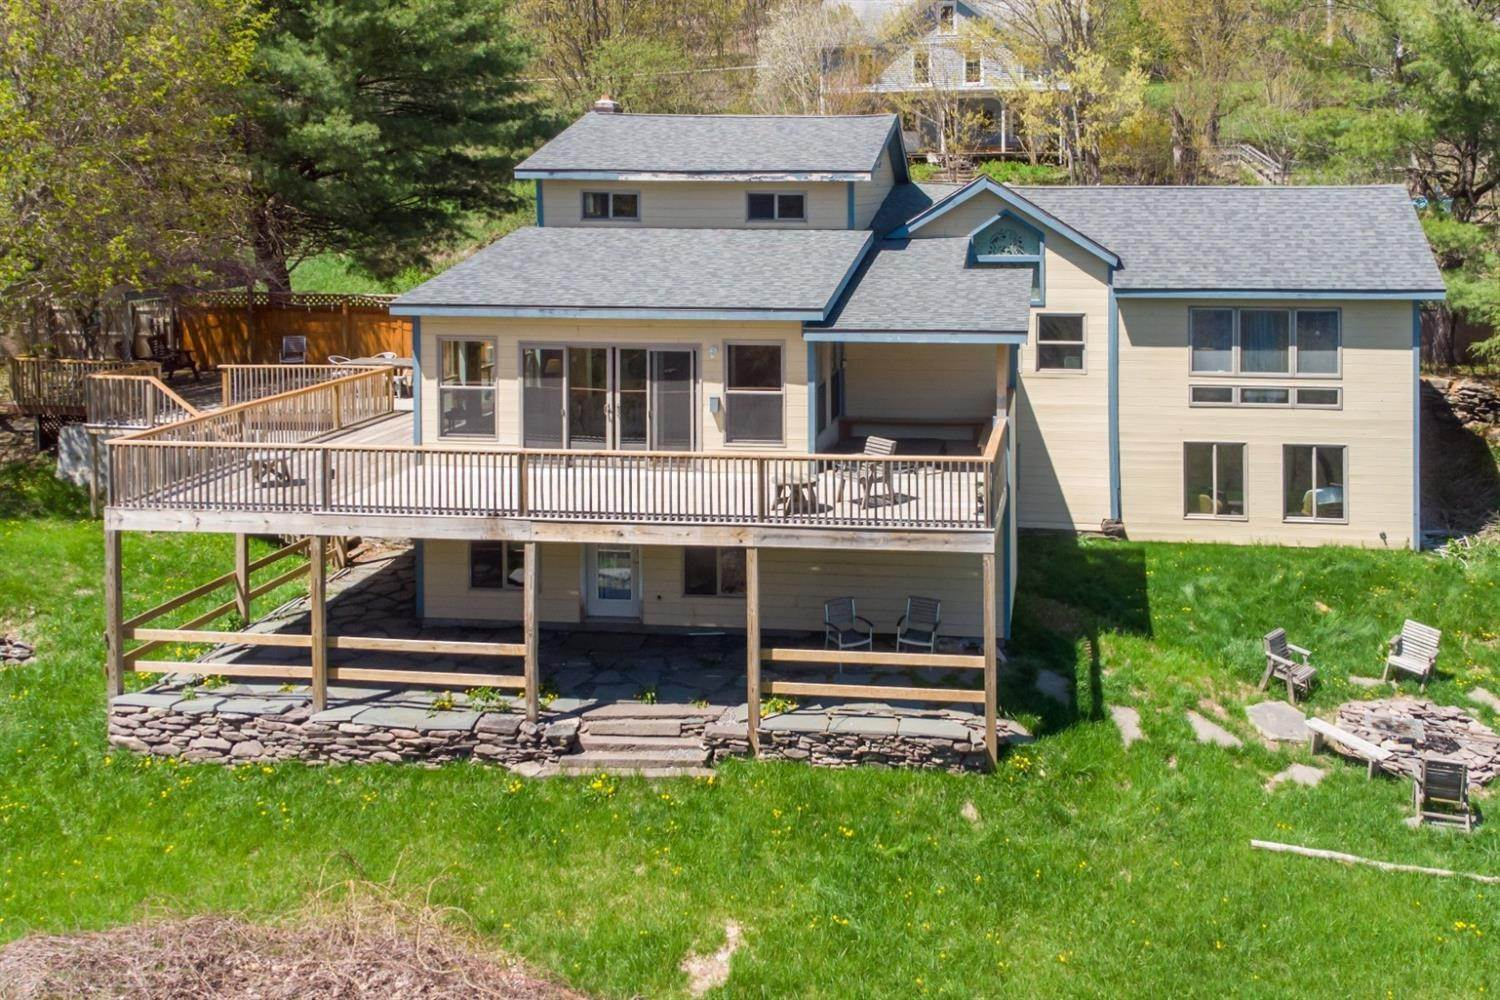 Single Family Homes for Sale at 1132 Coounty Highway 36 Margaretville, New York 12455 United States